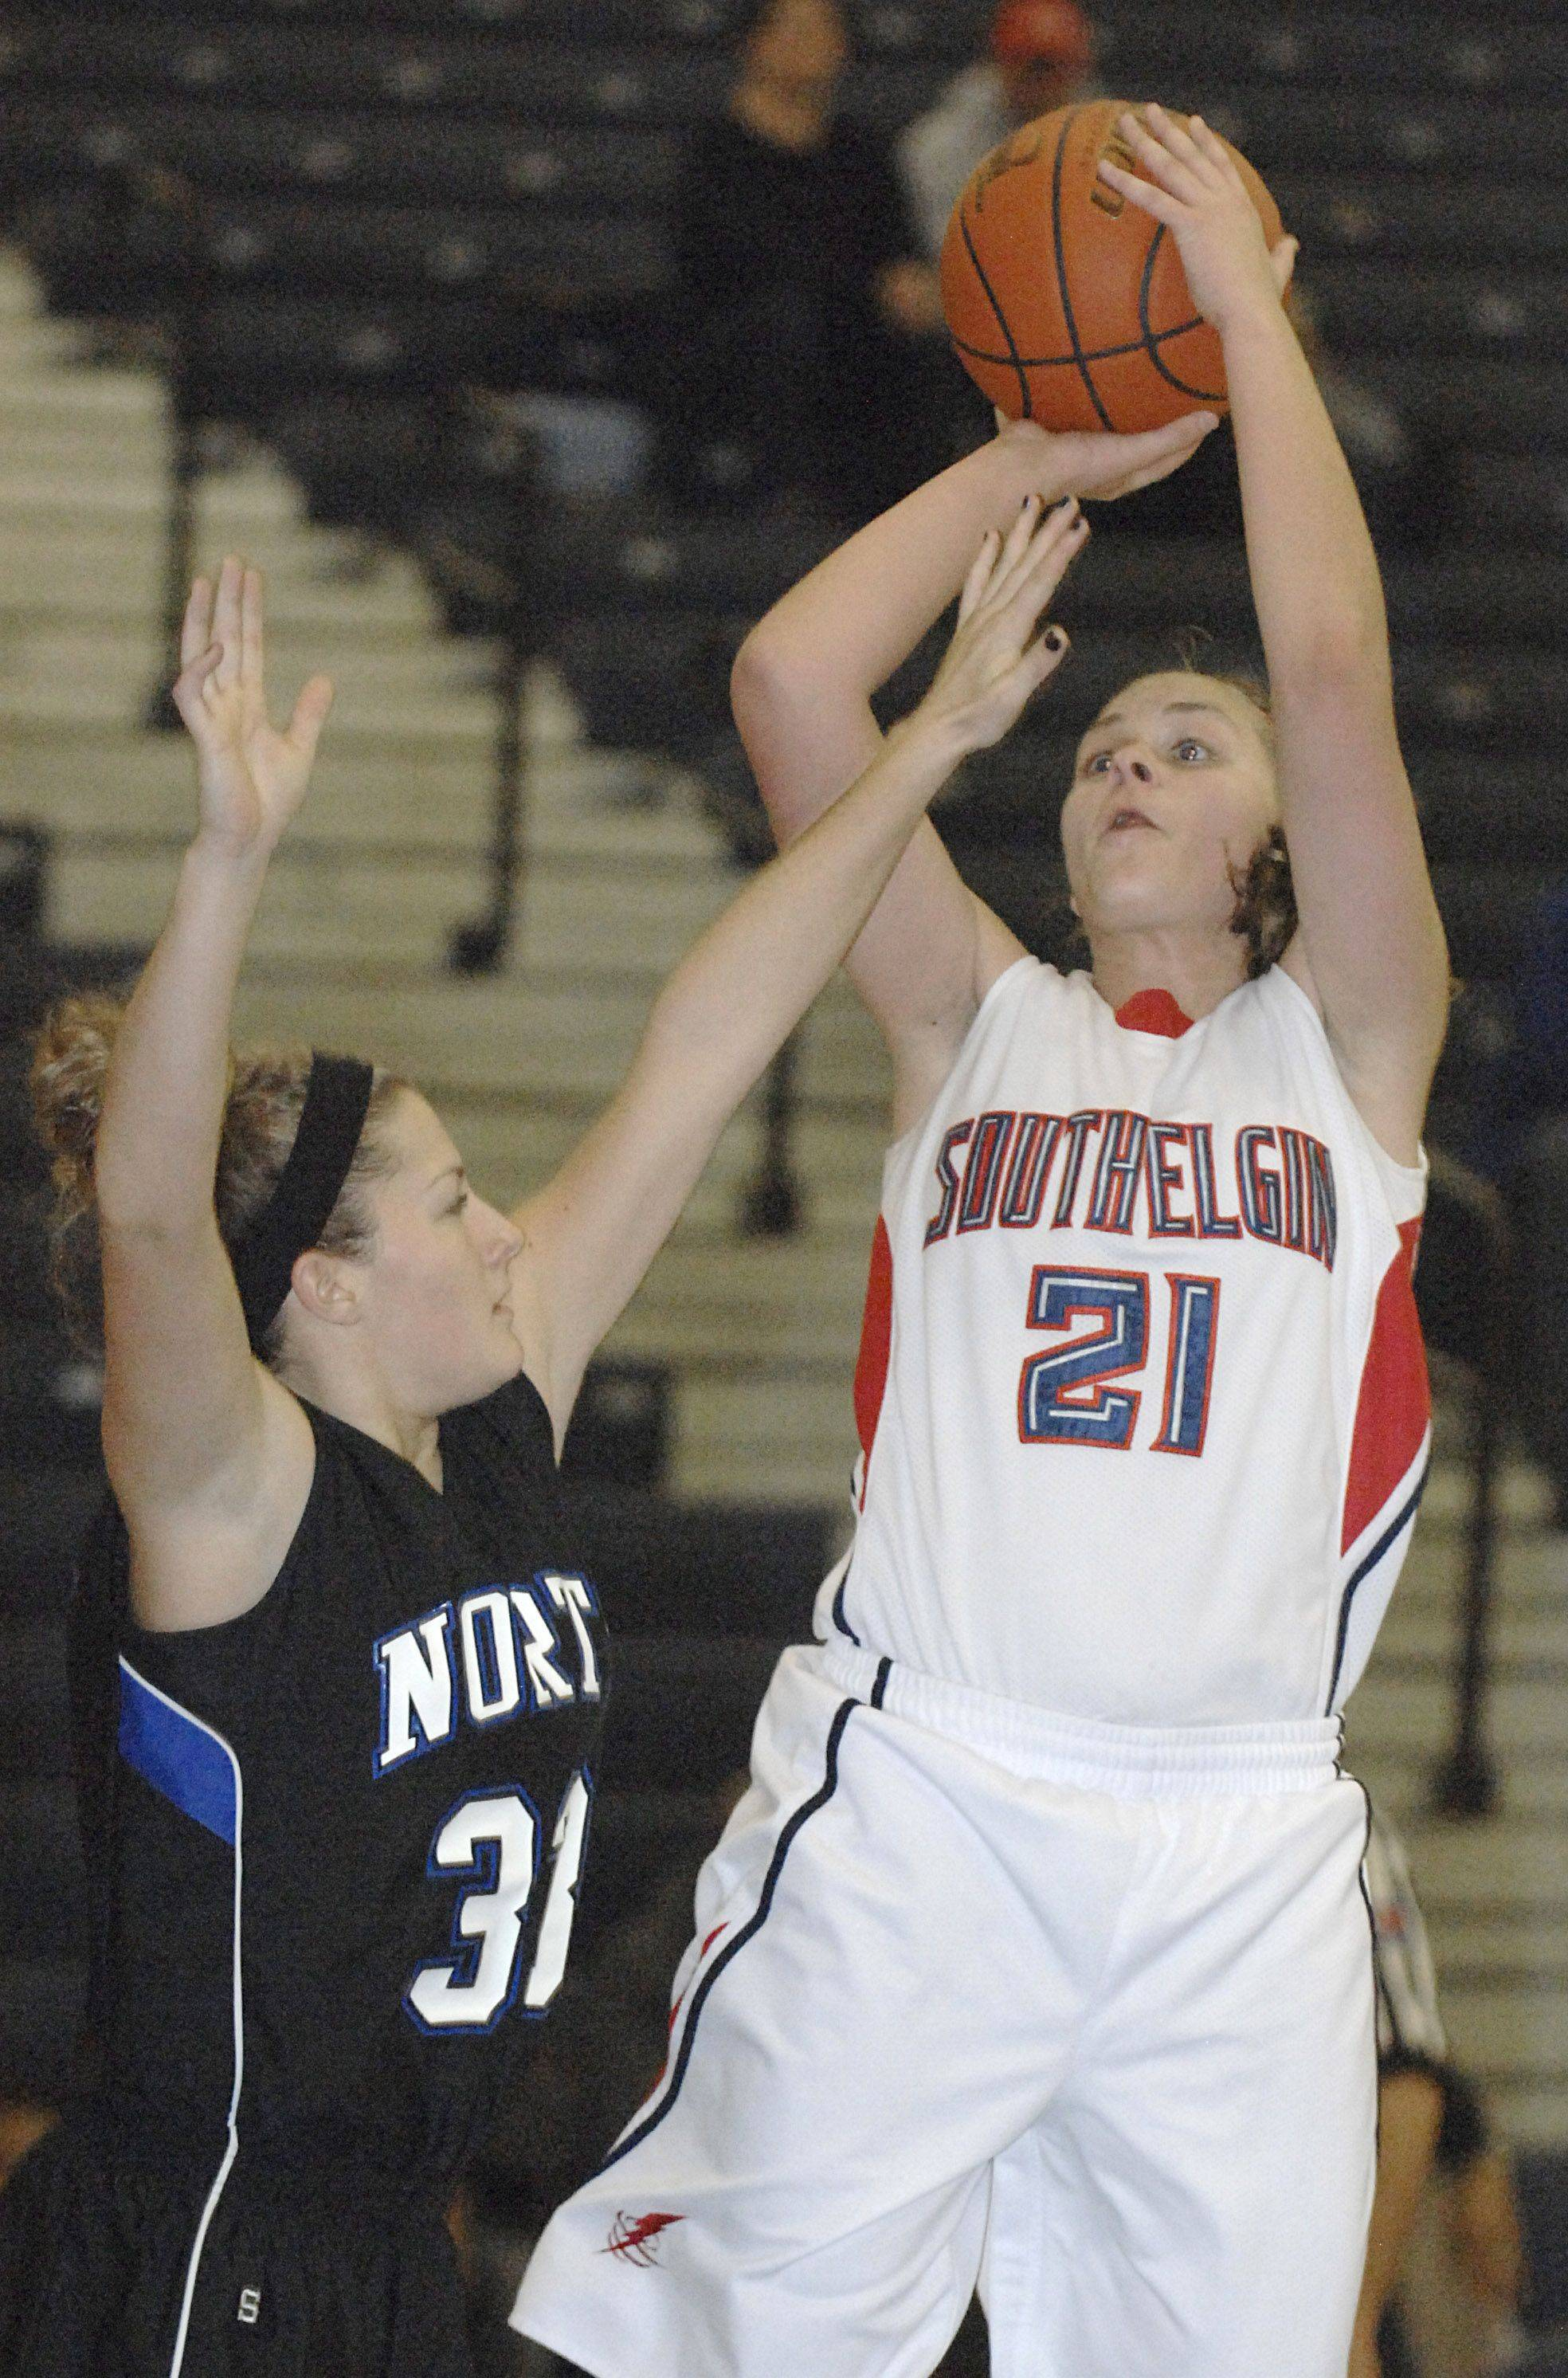 Laura Stoecker/lstoecker@dailyherald.com South Elgin's Amanda Behles takes a shot over St. Charles North's on Taylor Russell in the second quarter on Saturday, December 11.